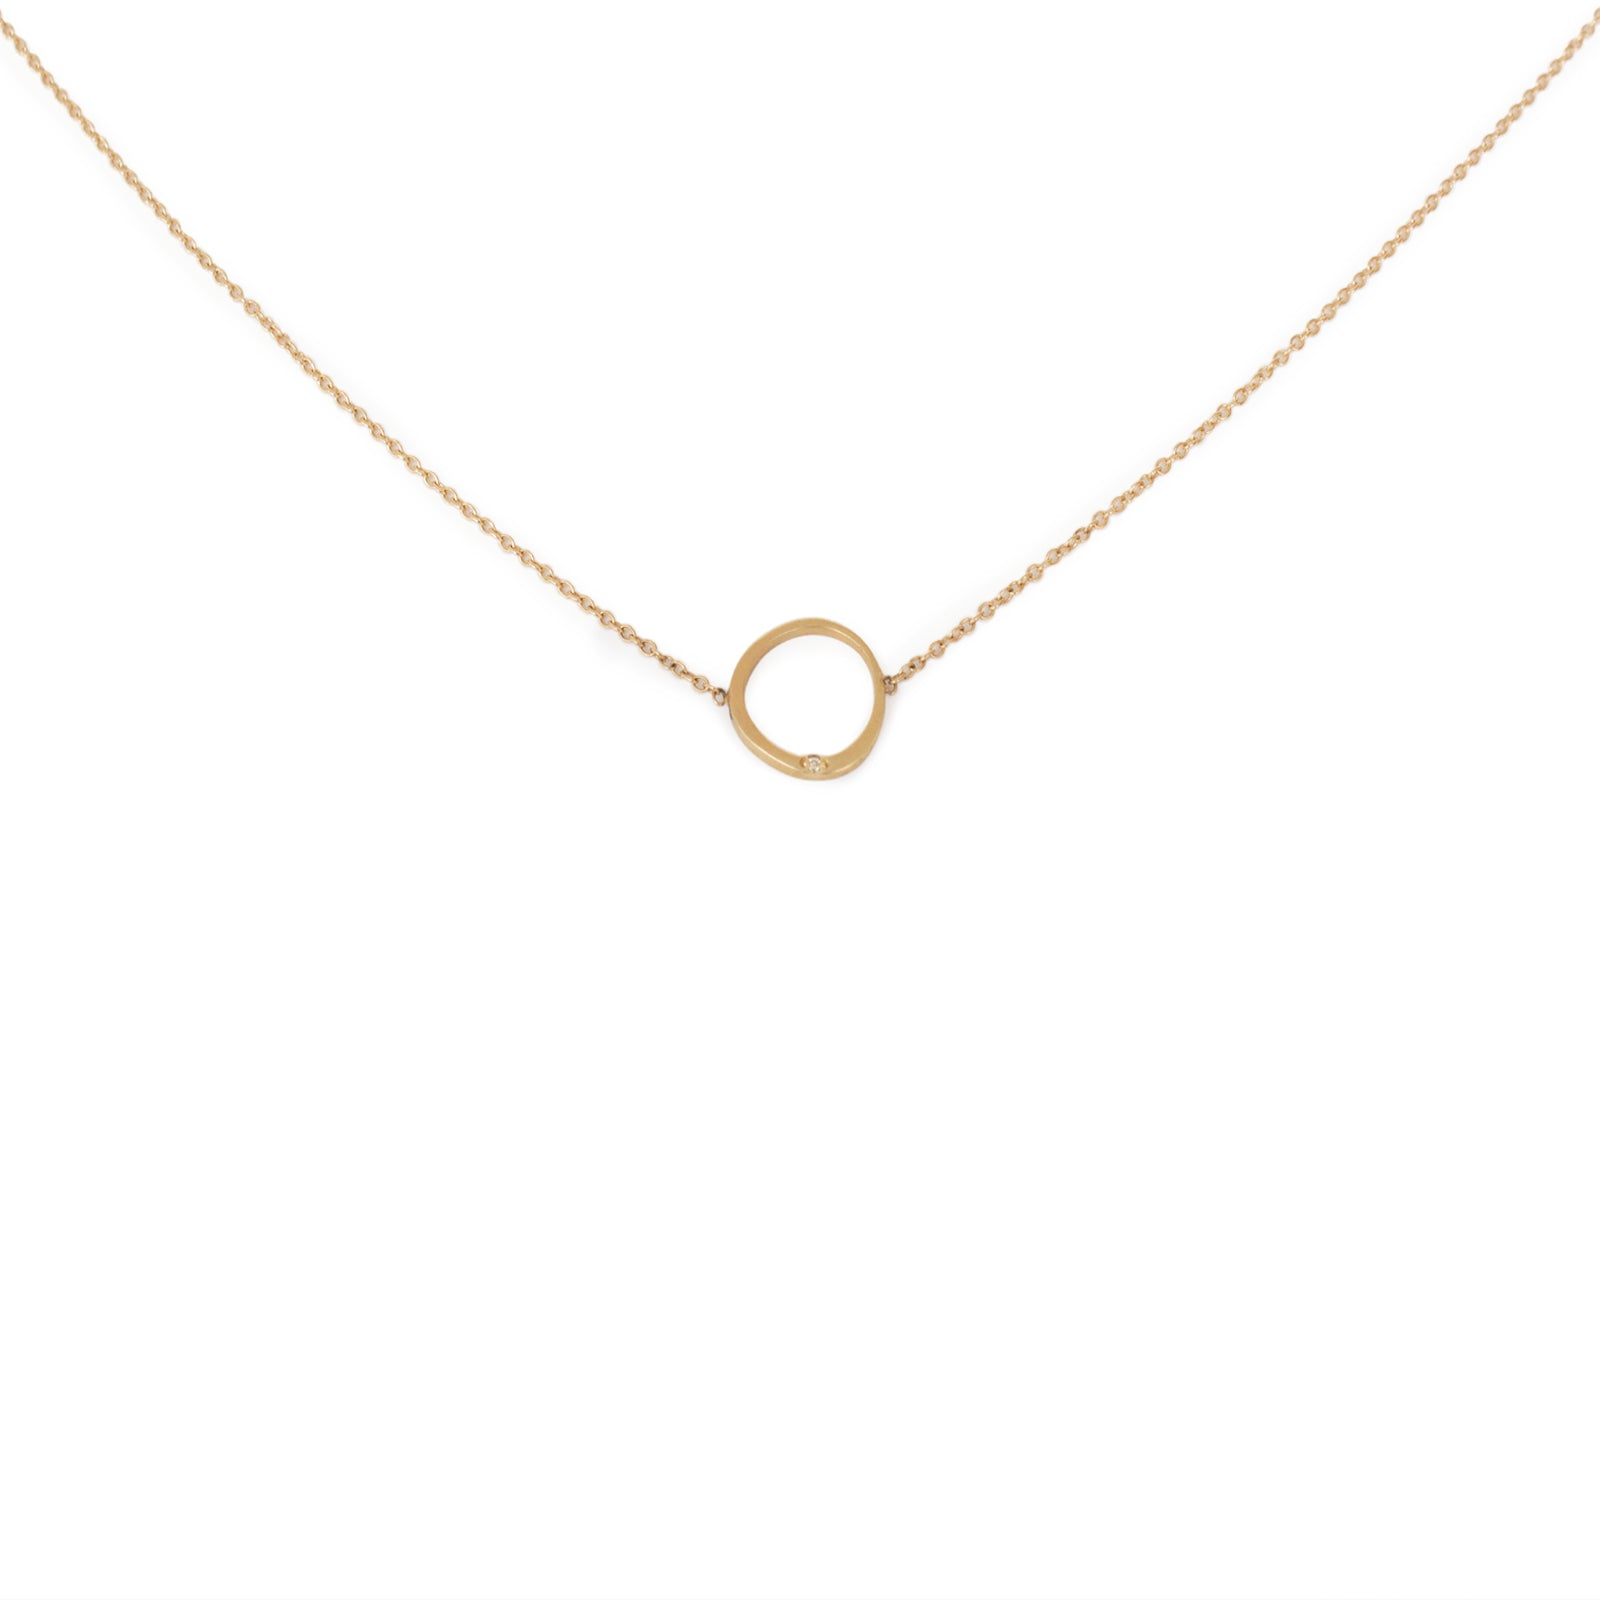 14k yellow gold with white diamond/14k yellow gold chain offset circle necklace